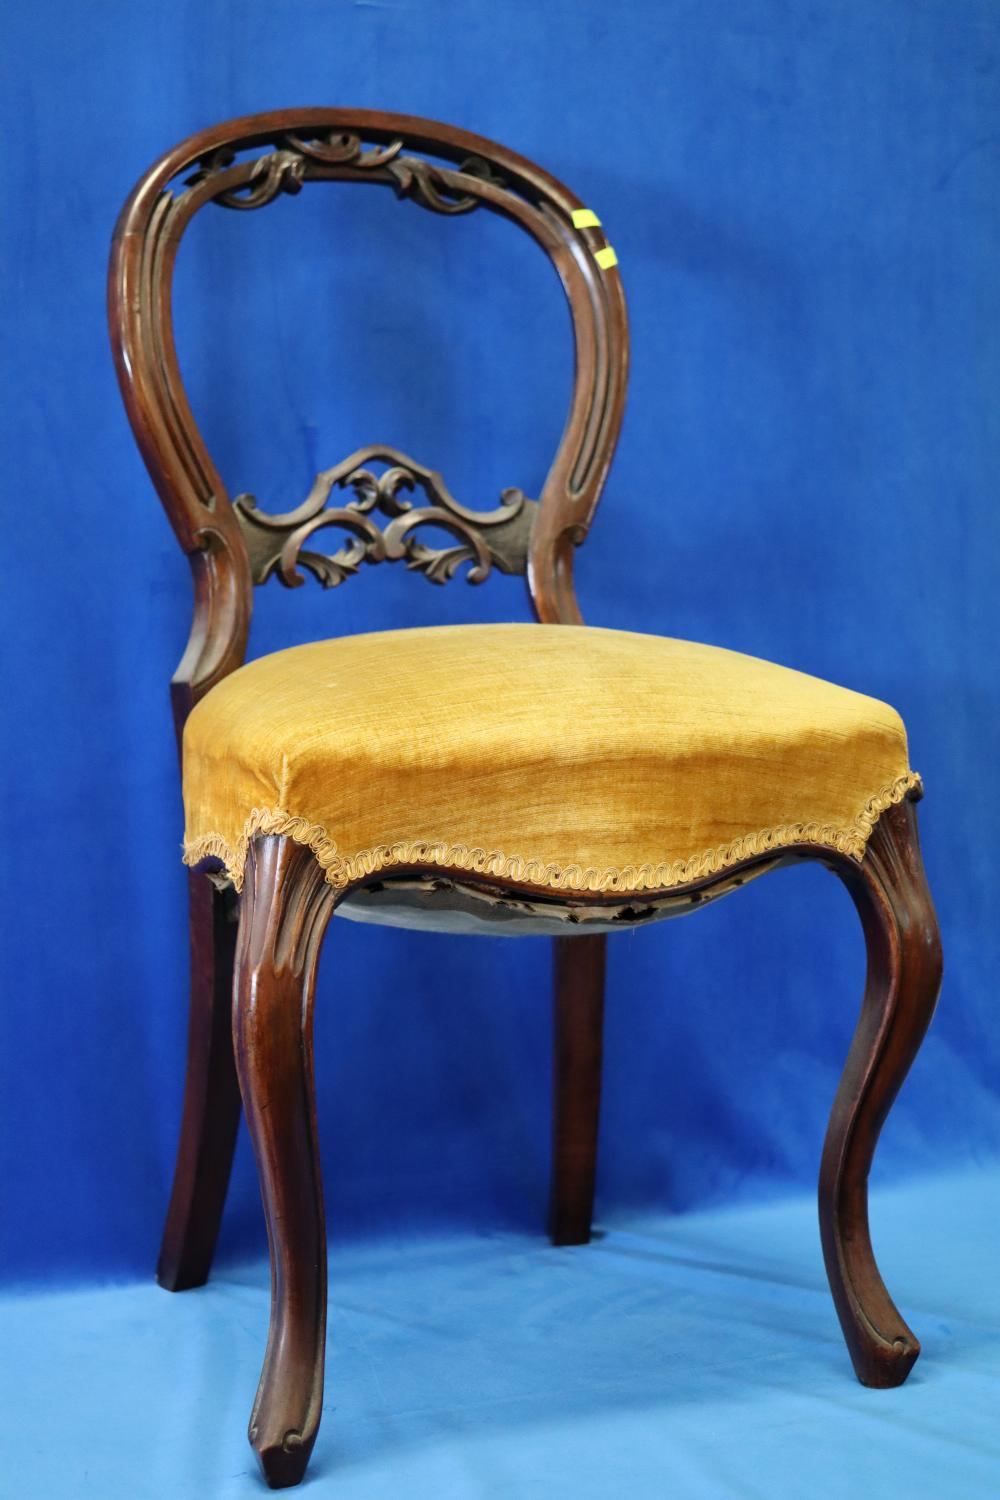 SET OF 6 BALLOON BACK DINING CHAIRS WITH CARVED FEATURES( 2 ARE A DIFFERENT DESIGN